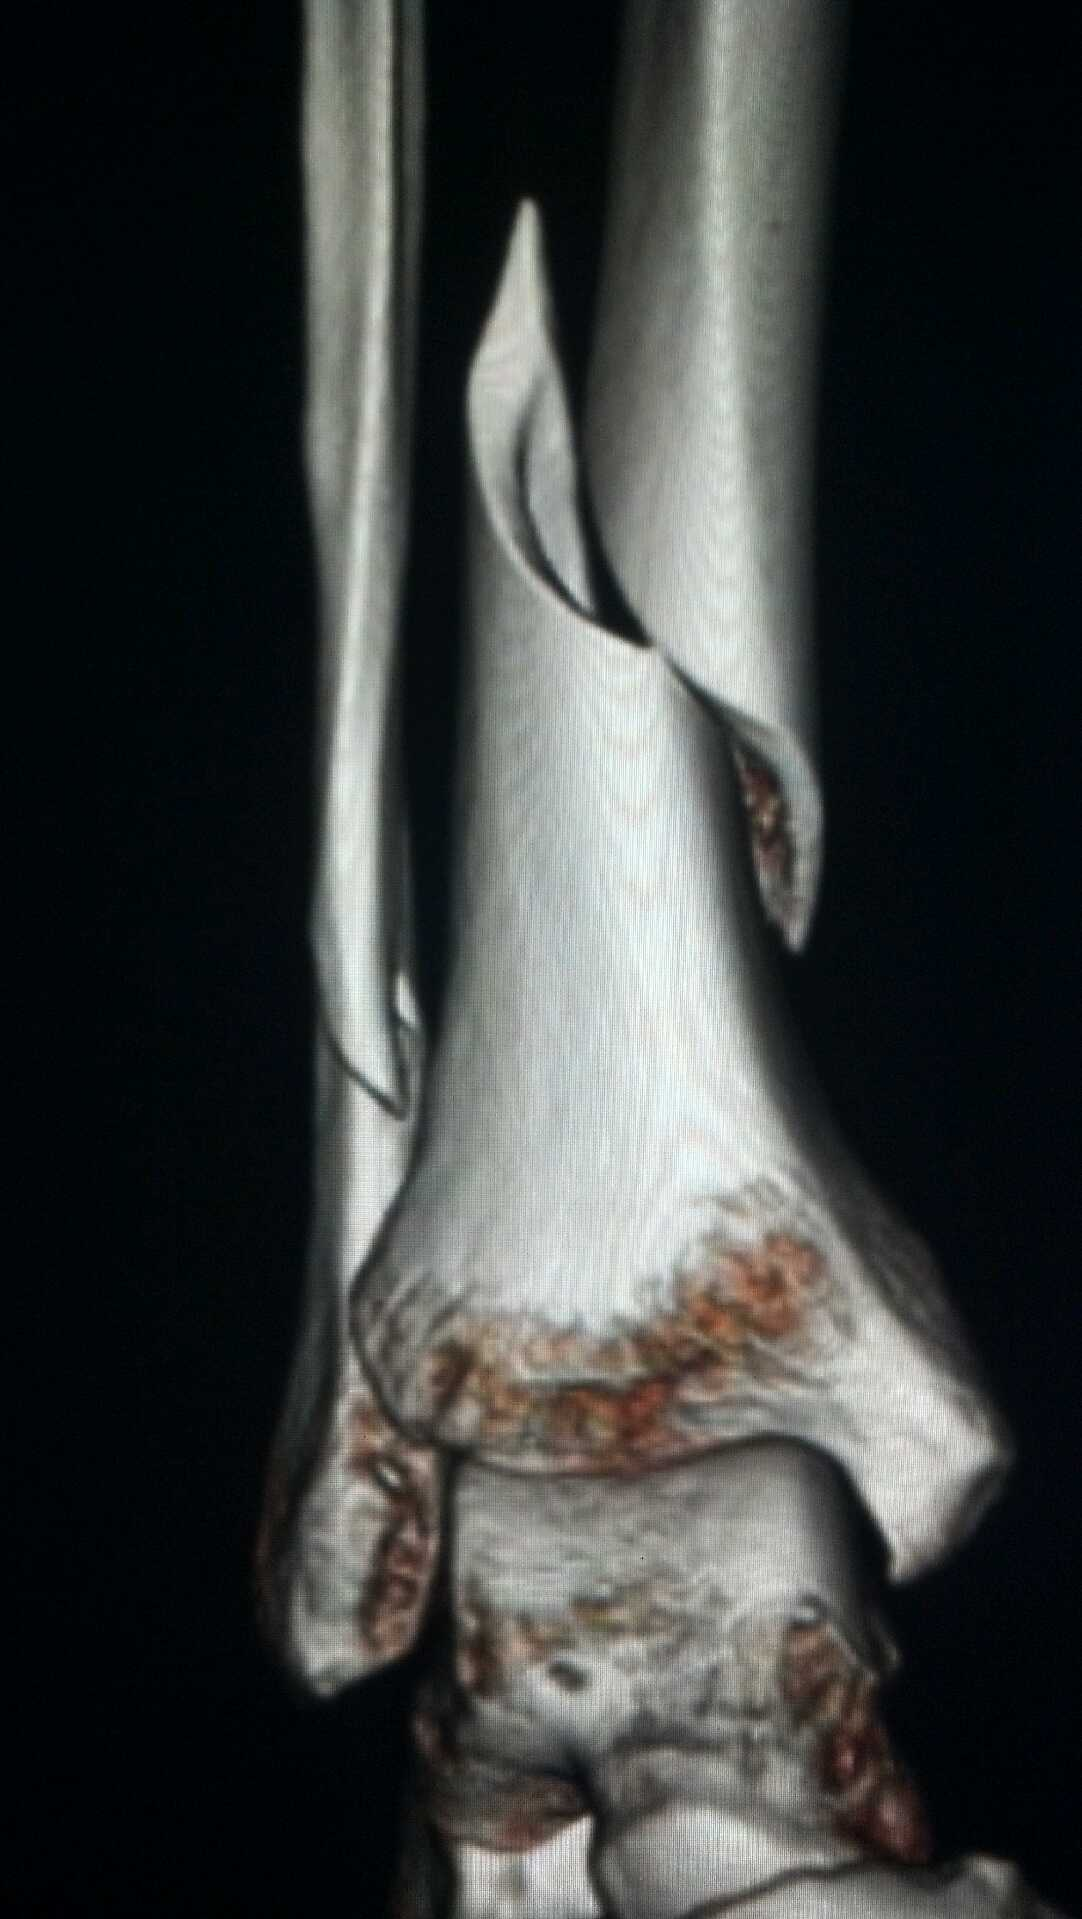 3D imaging reconstruction of a lower leg fracture